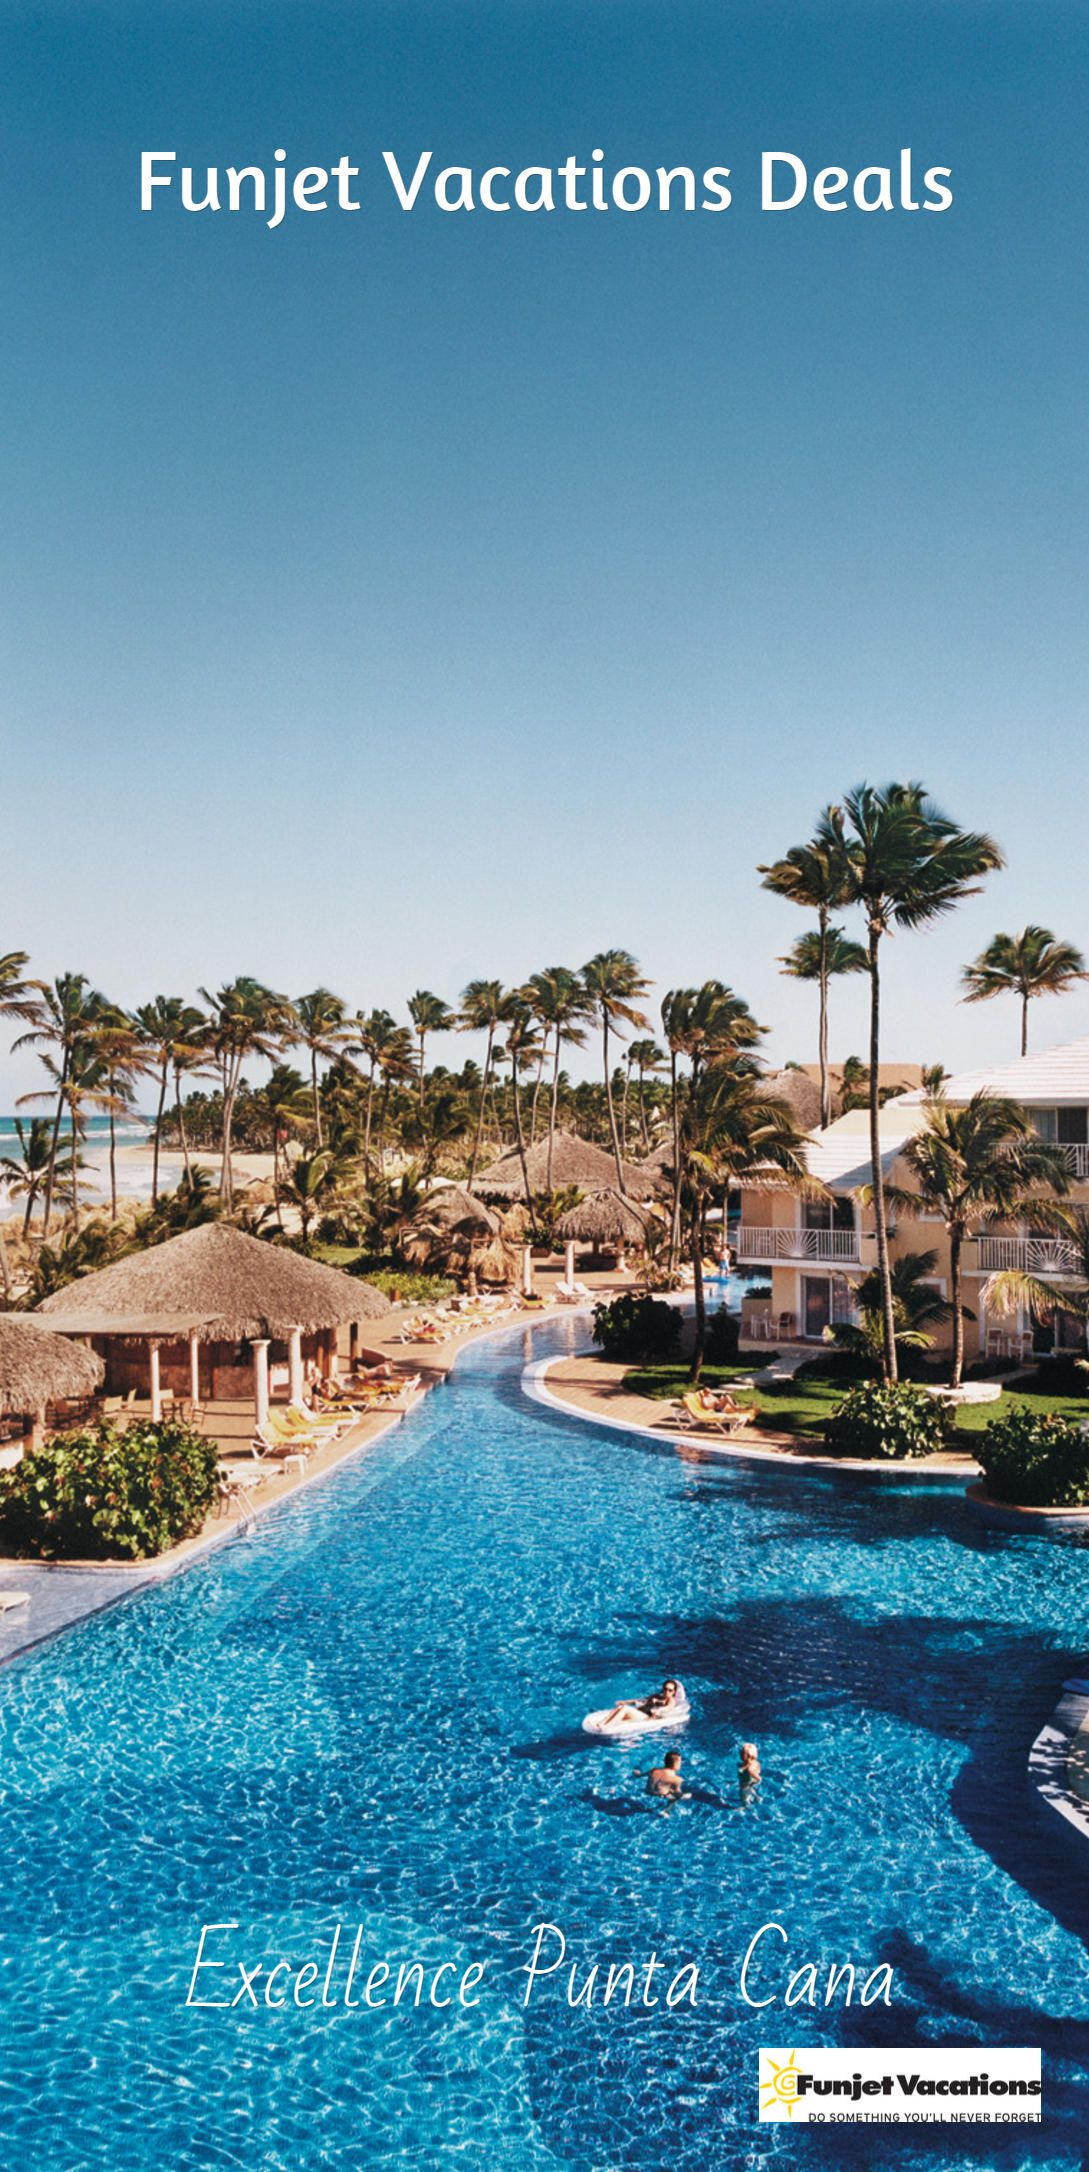 Vacation Package Deals  Excellence punta cana Punta cana